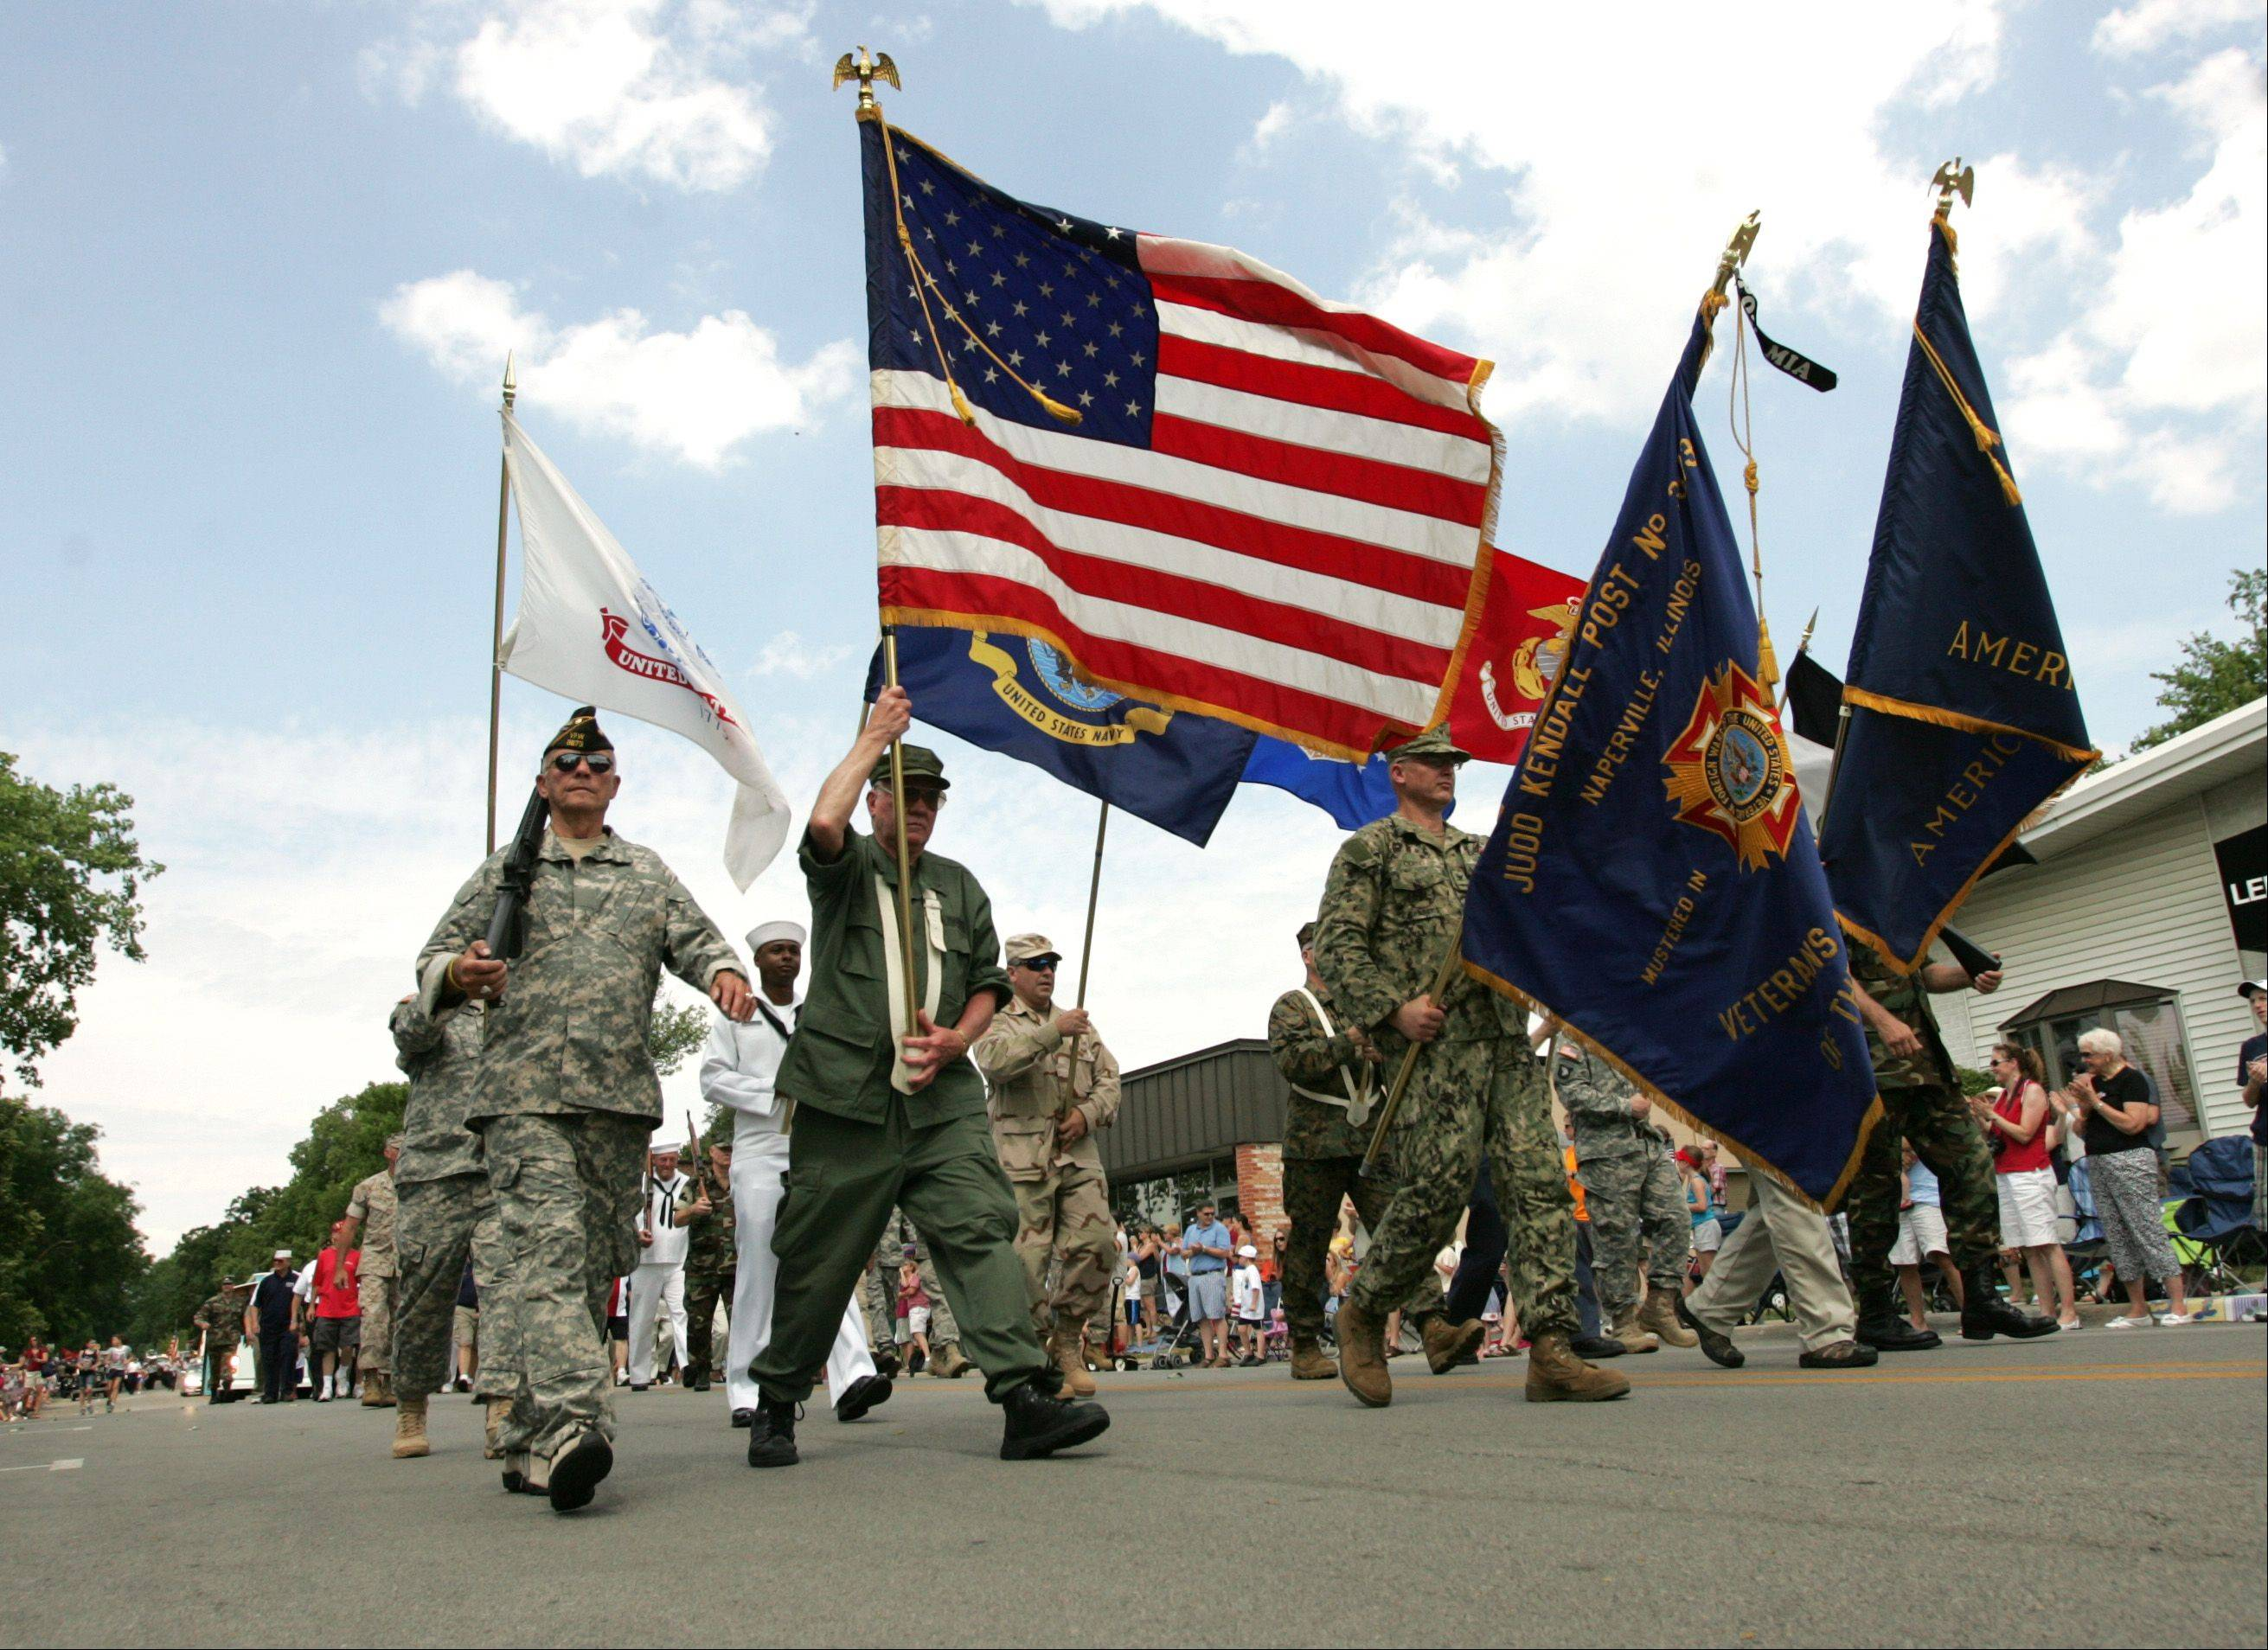 Members of the Judd Kendall Post 3873 Veterans of Foreign Wars march in the Naperville Memorial Day parade.